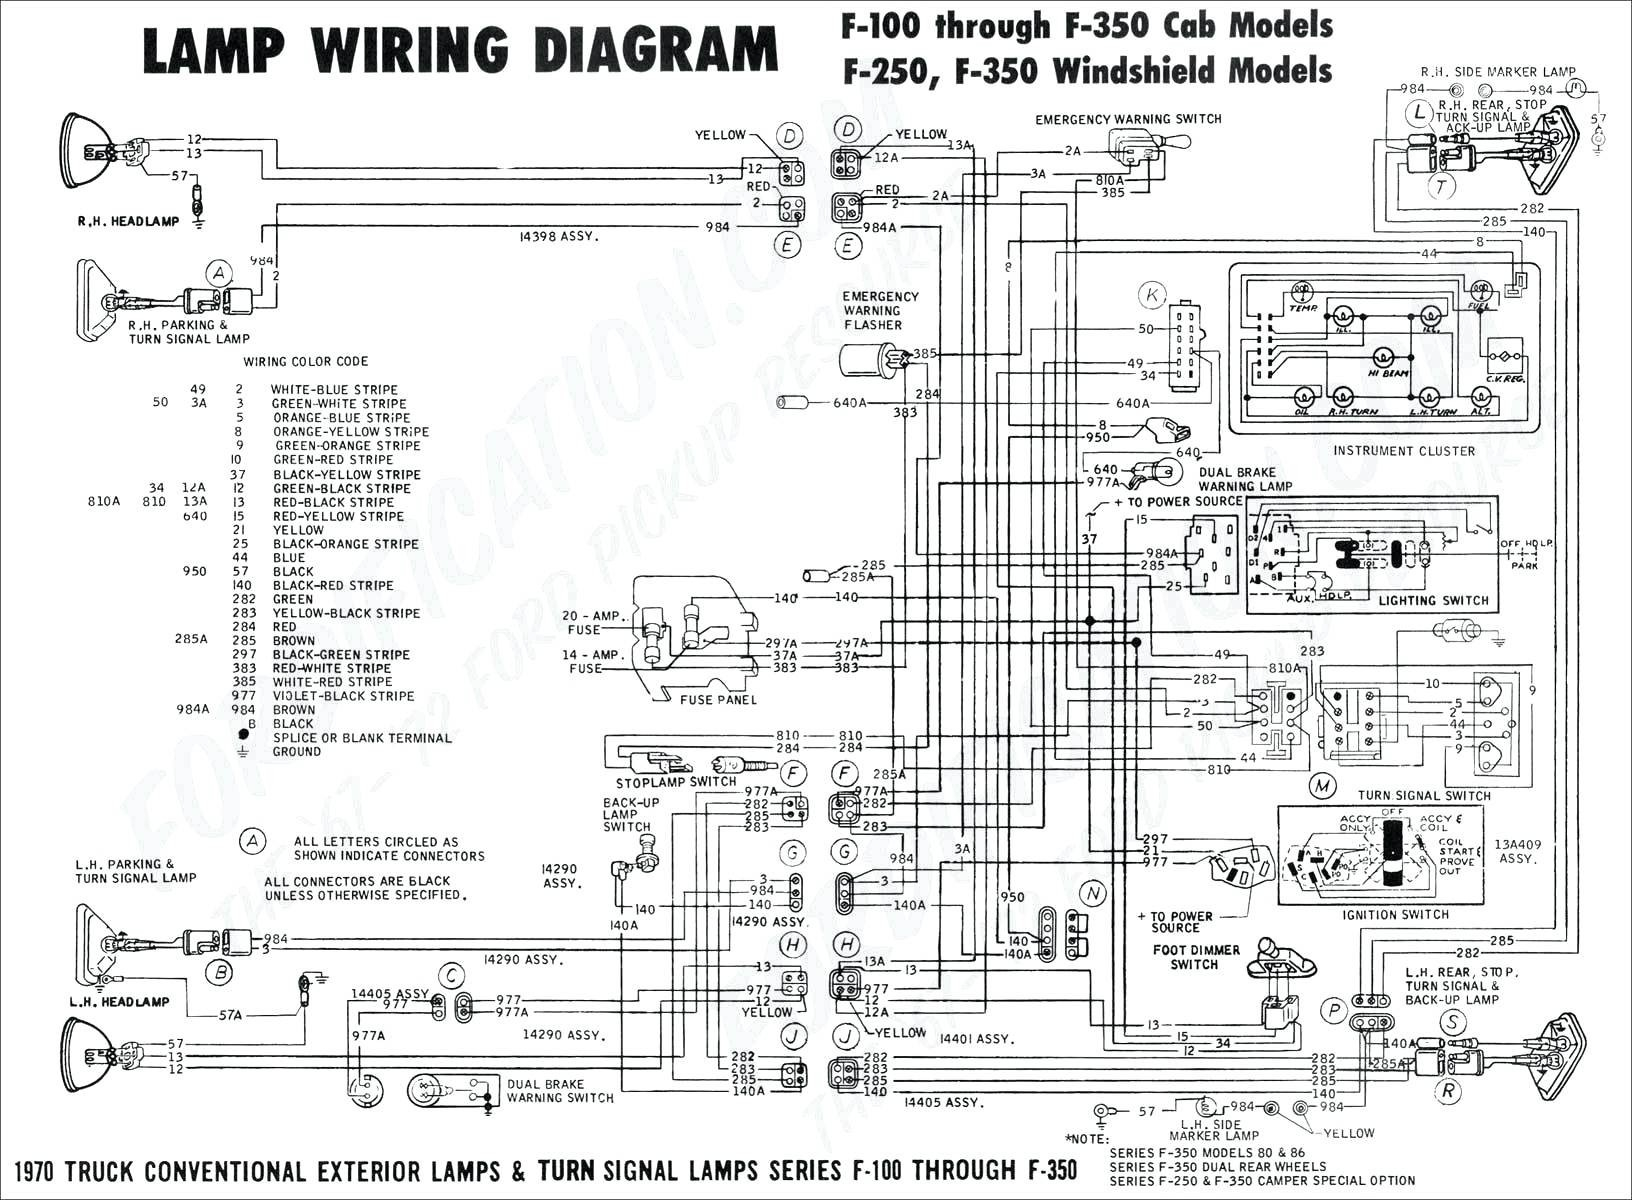 Subaru Forester Headlight Wiring Diagram